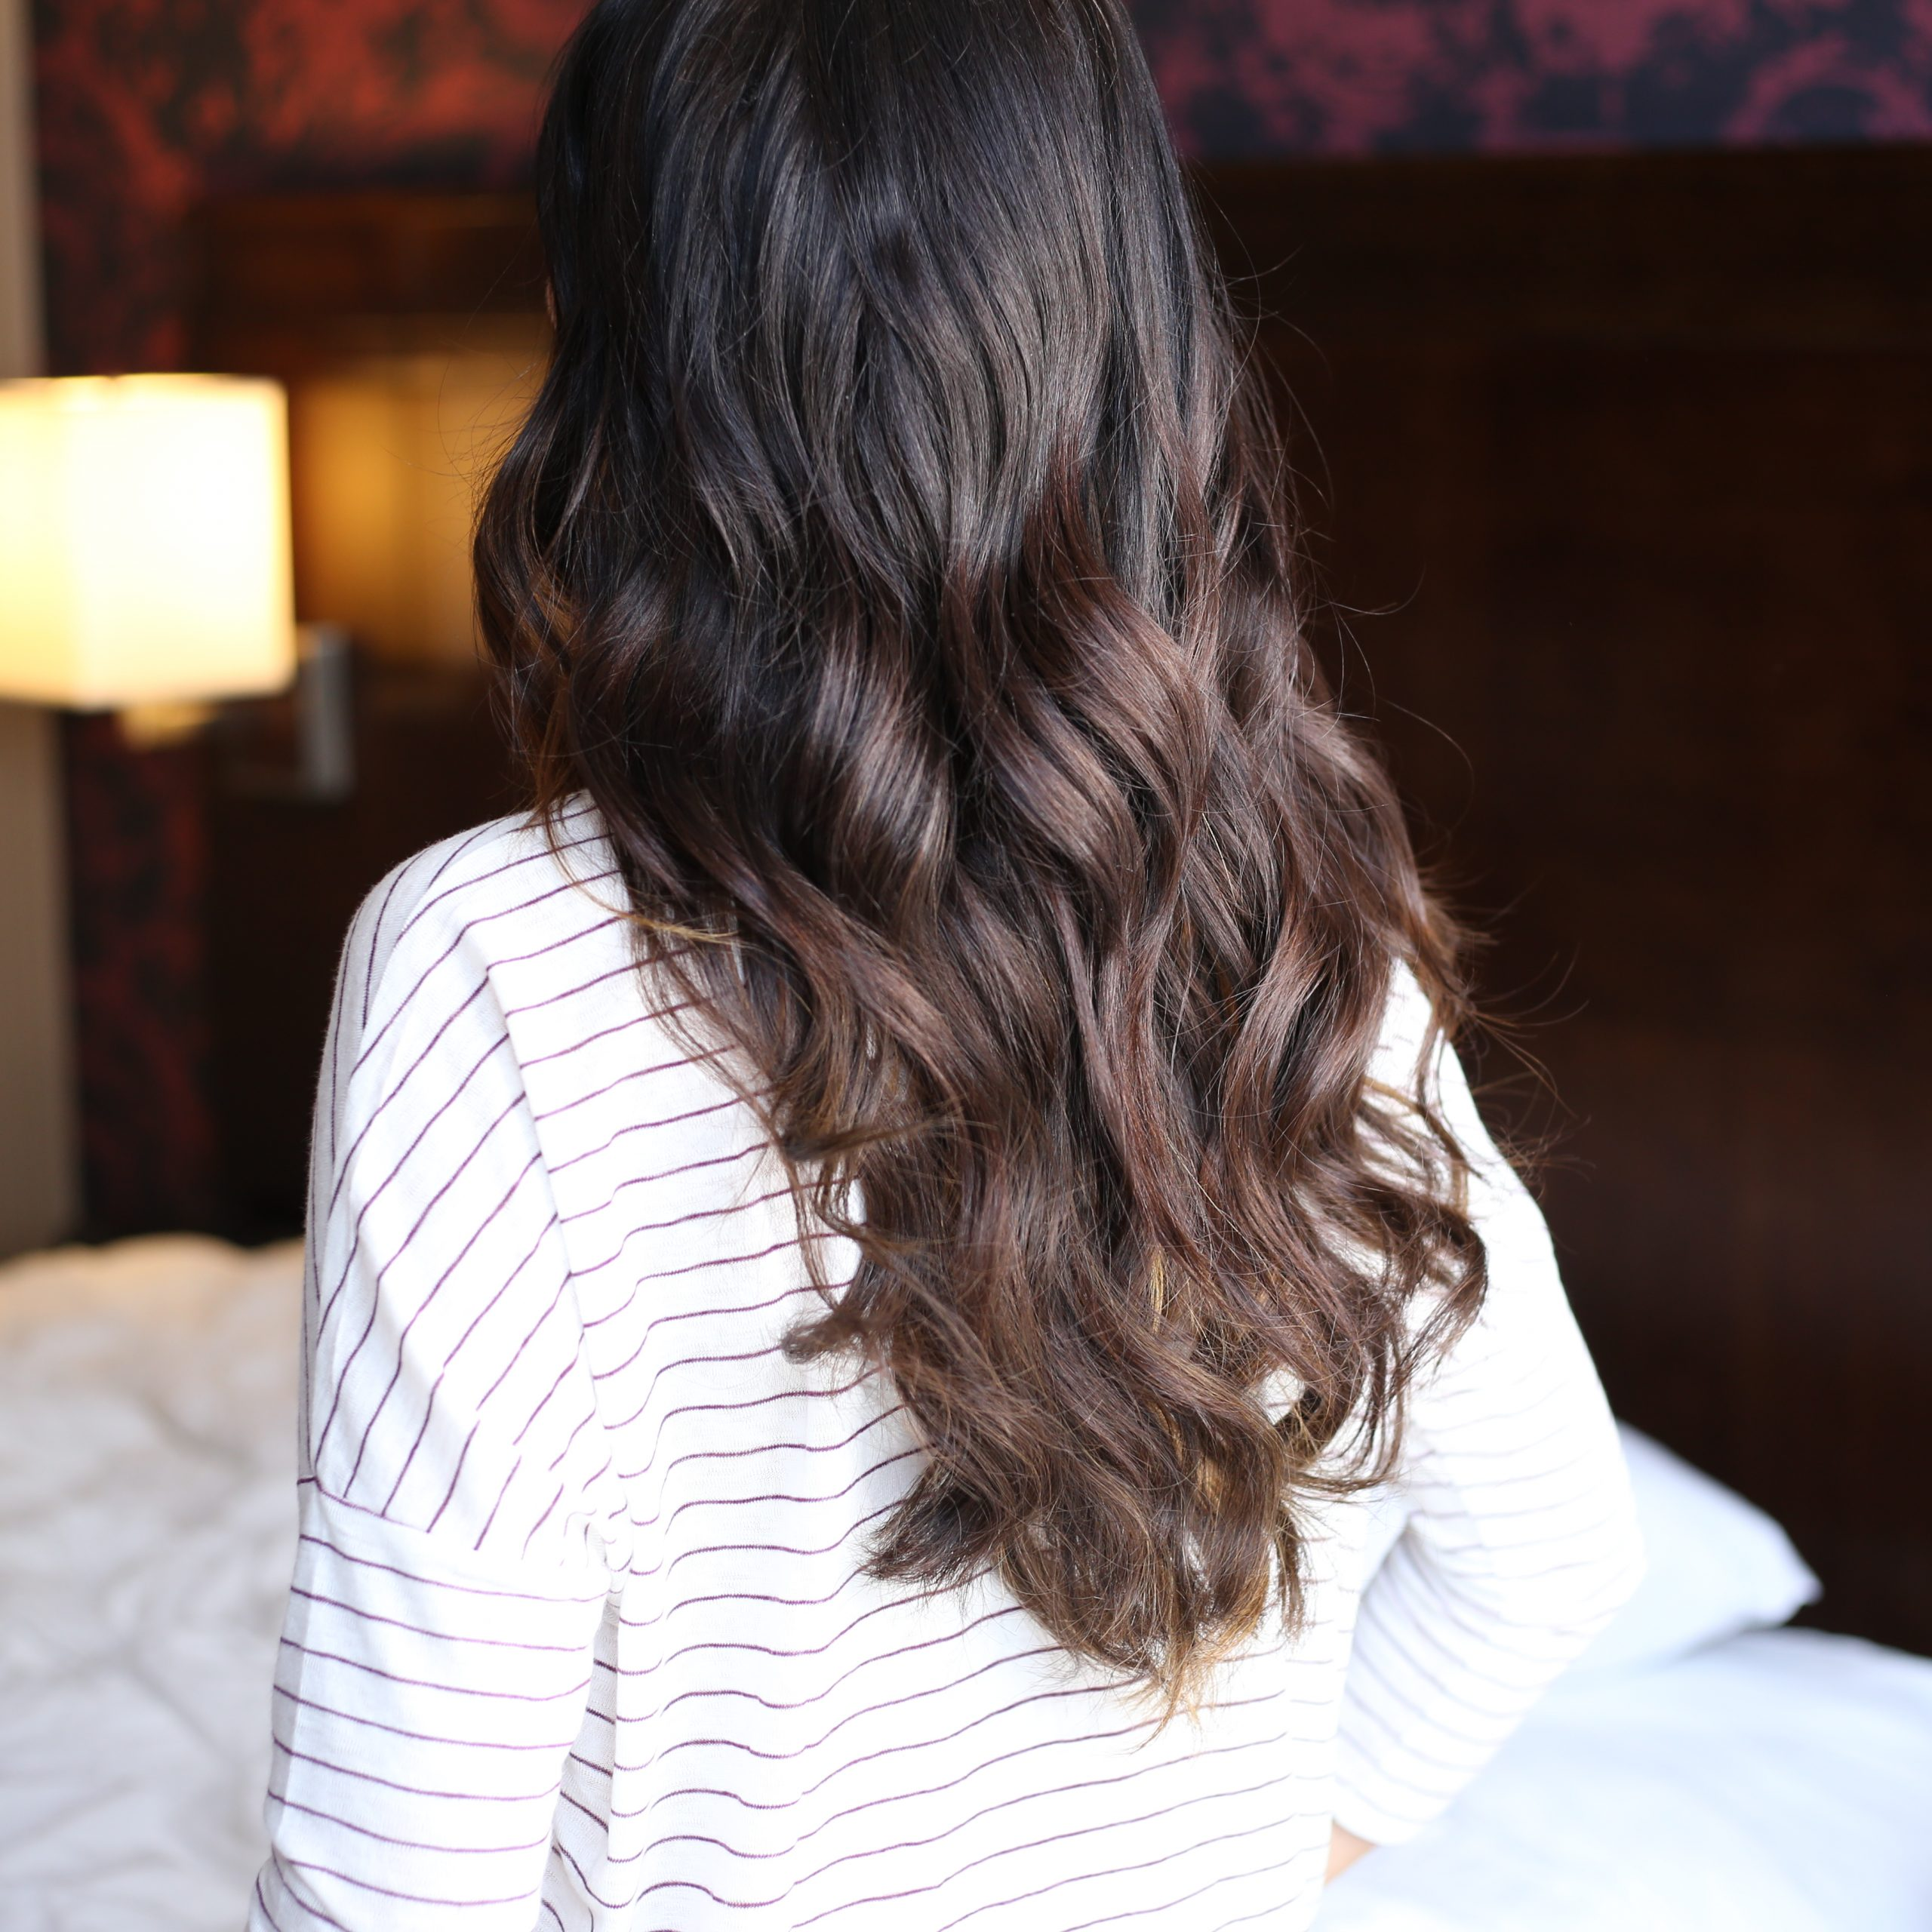 All About Hair & Hair Extensions